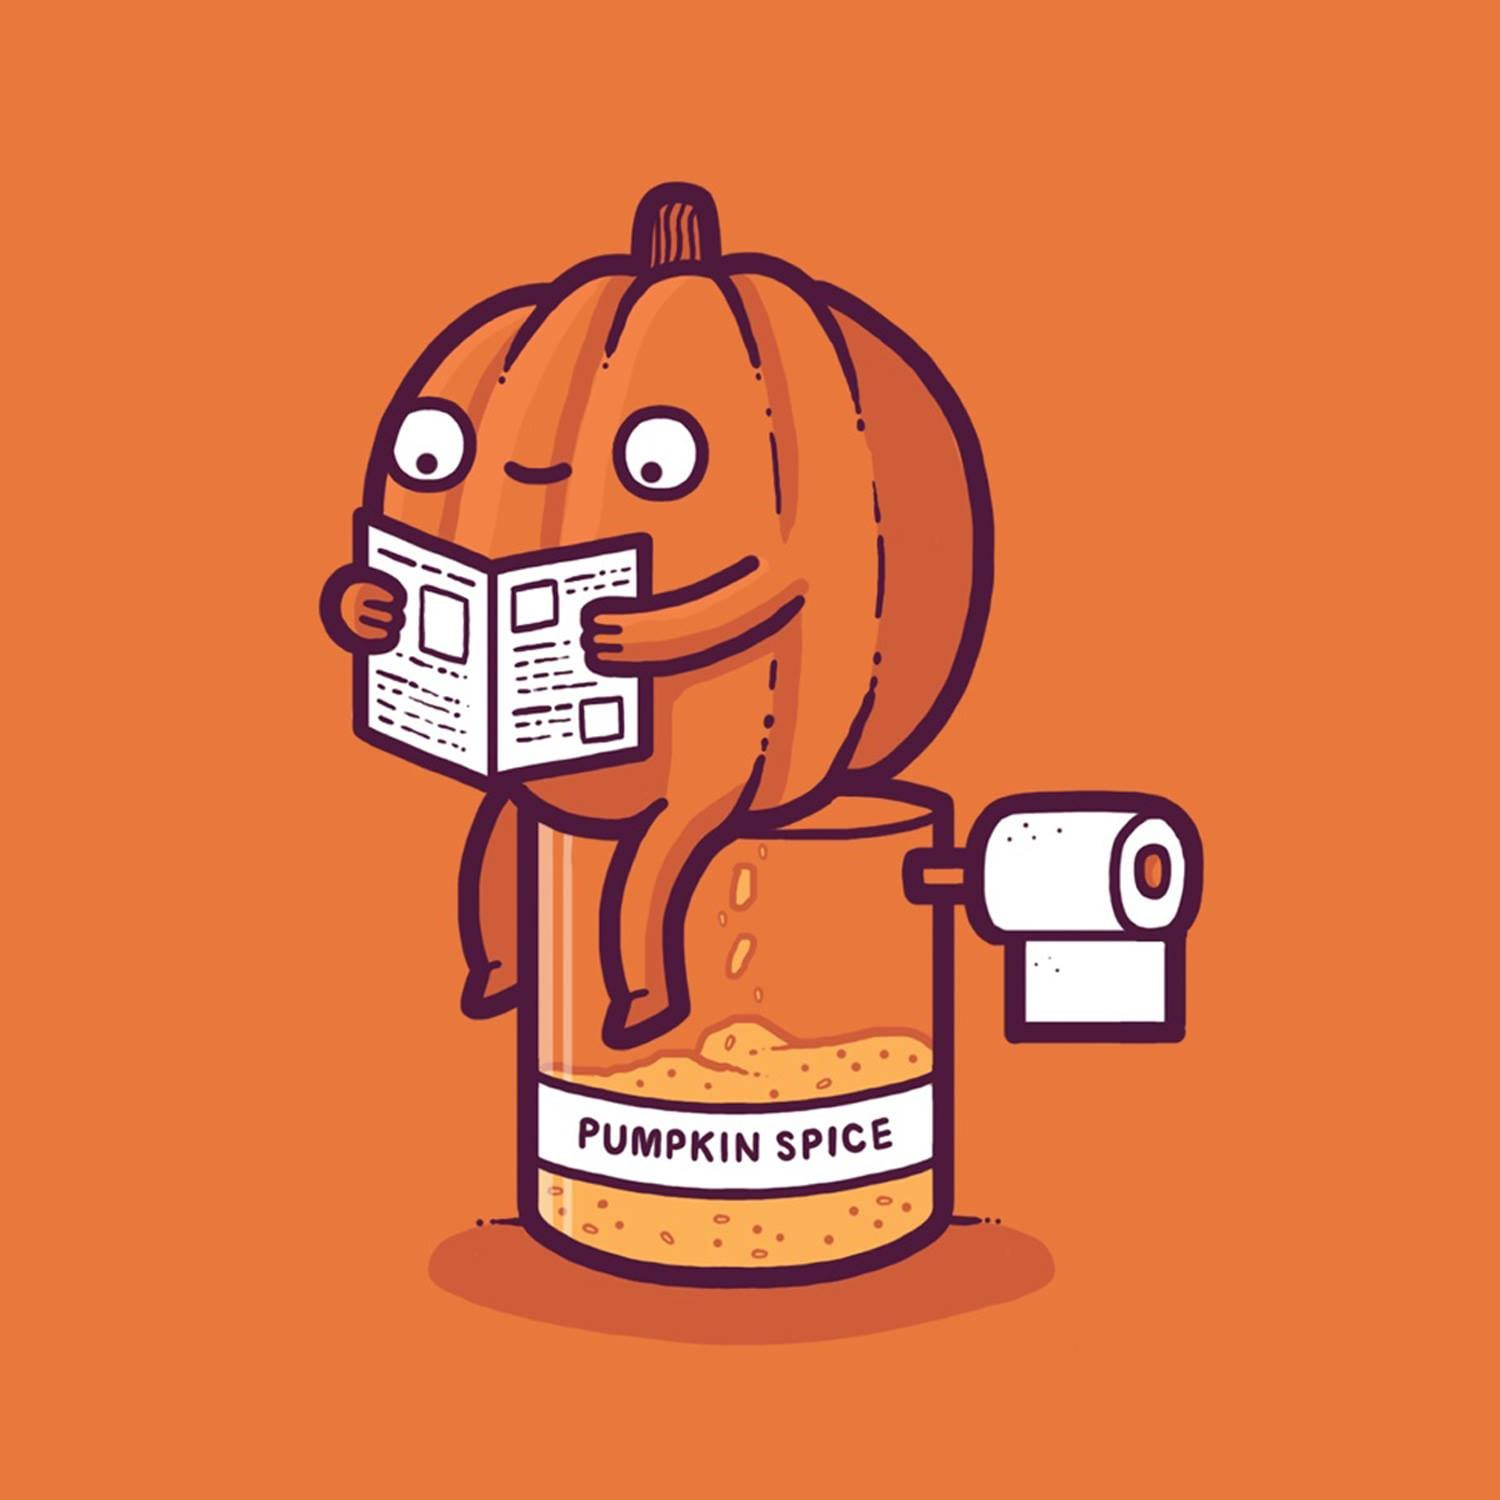 how pumpkin spice is made meme funny